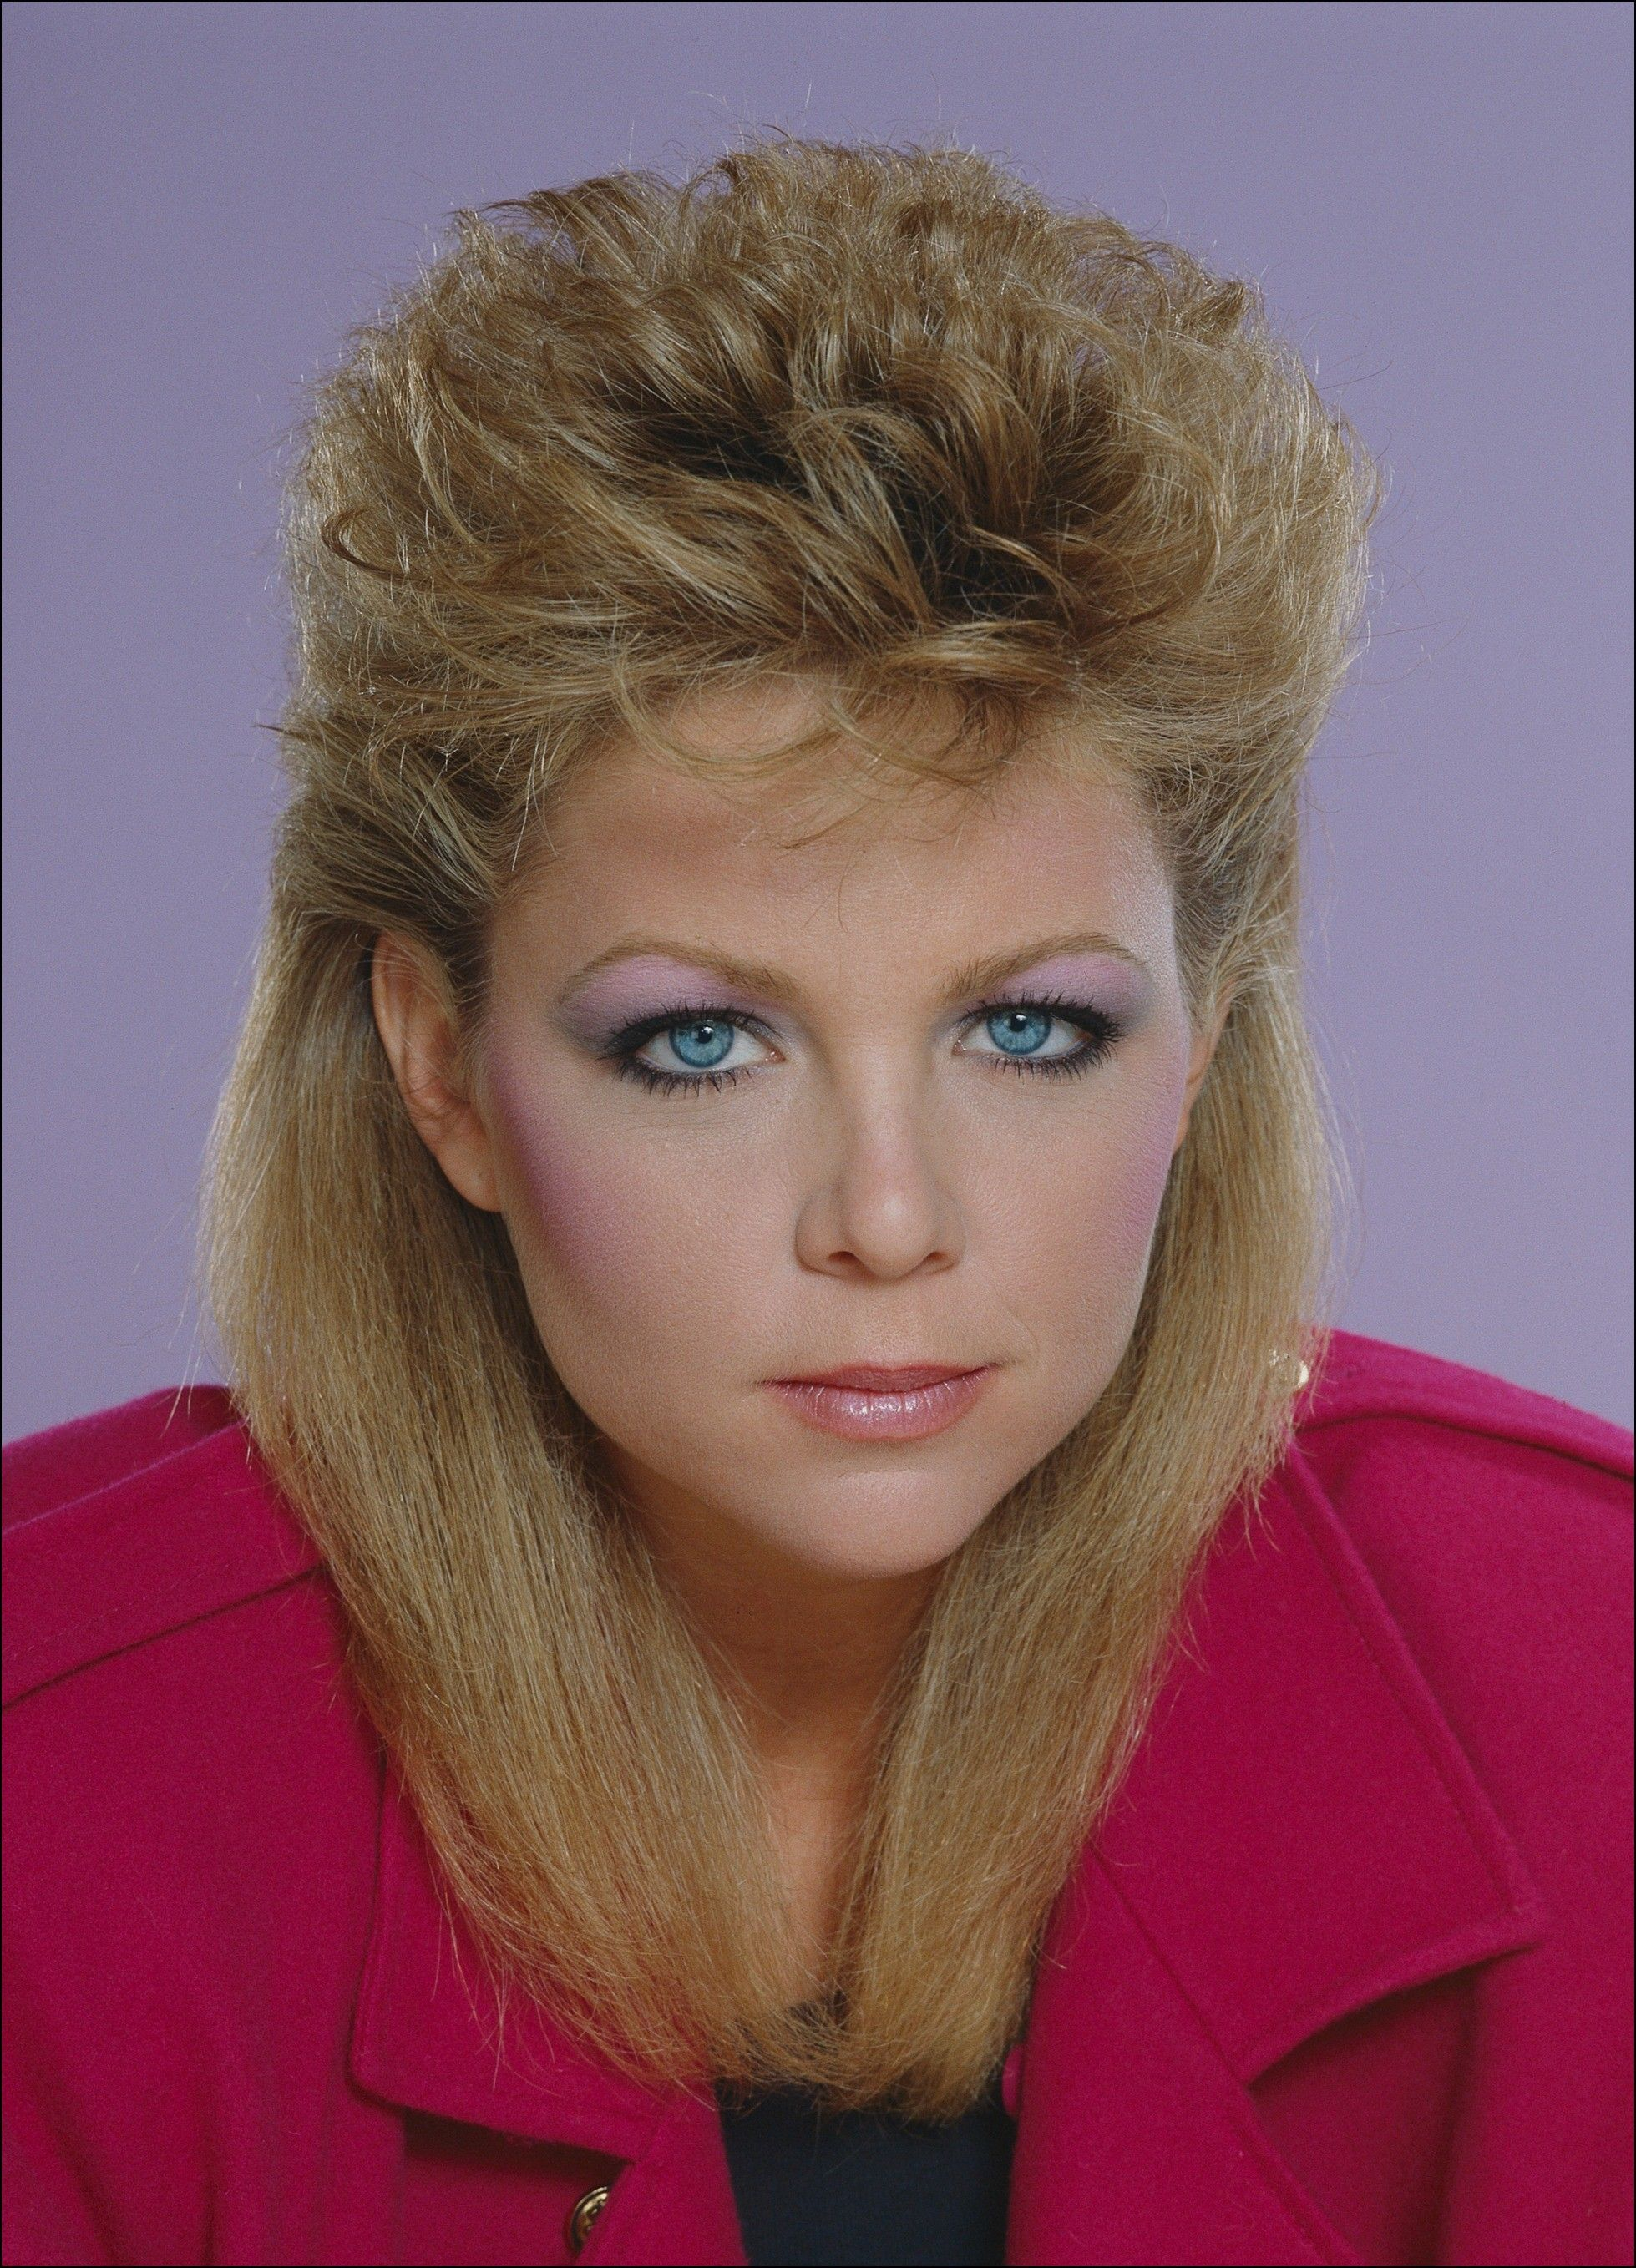 Hairstyles of the eighties s pinterest hair makeup and makeup